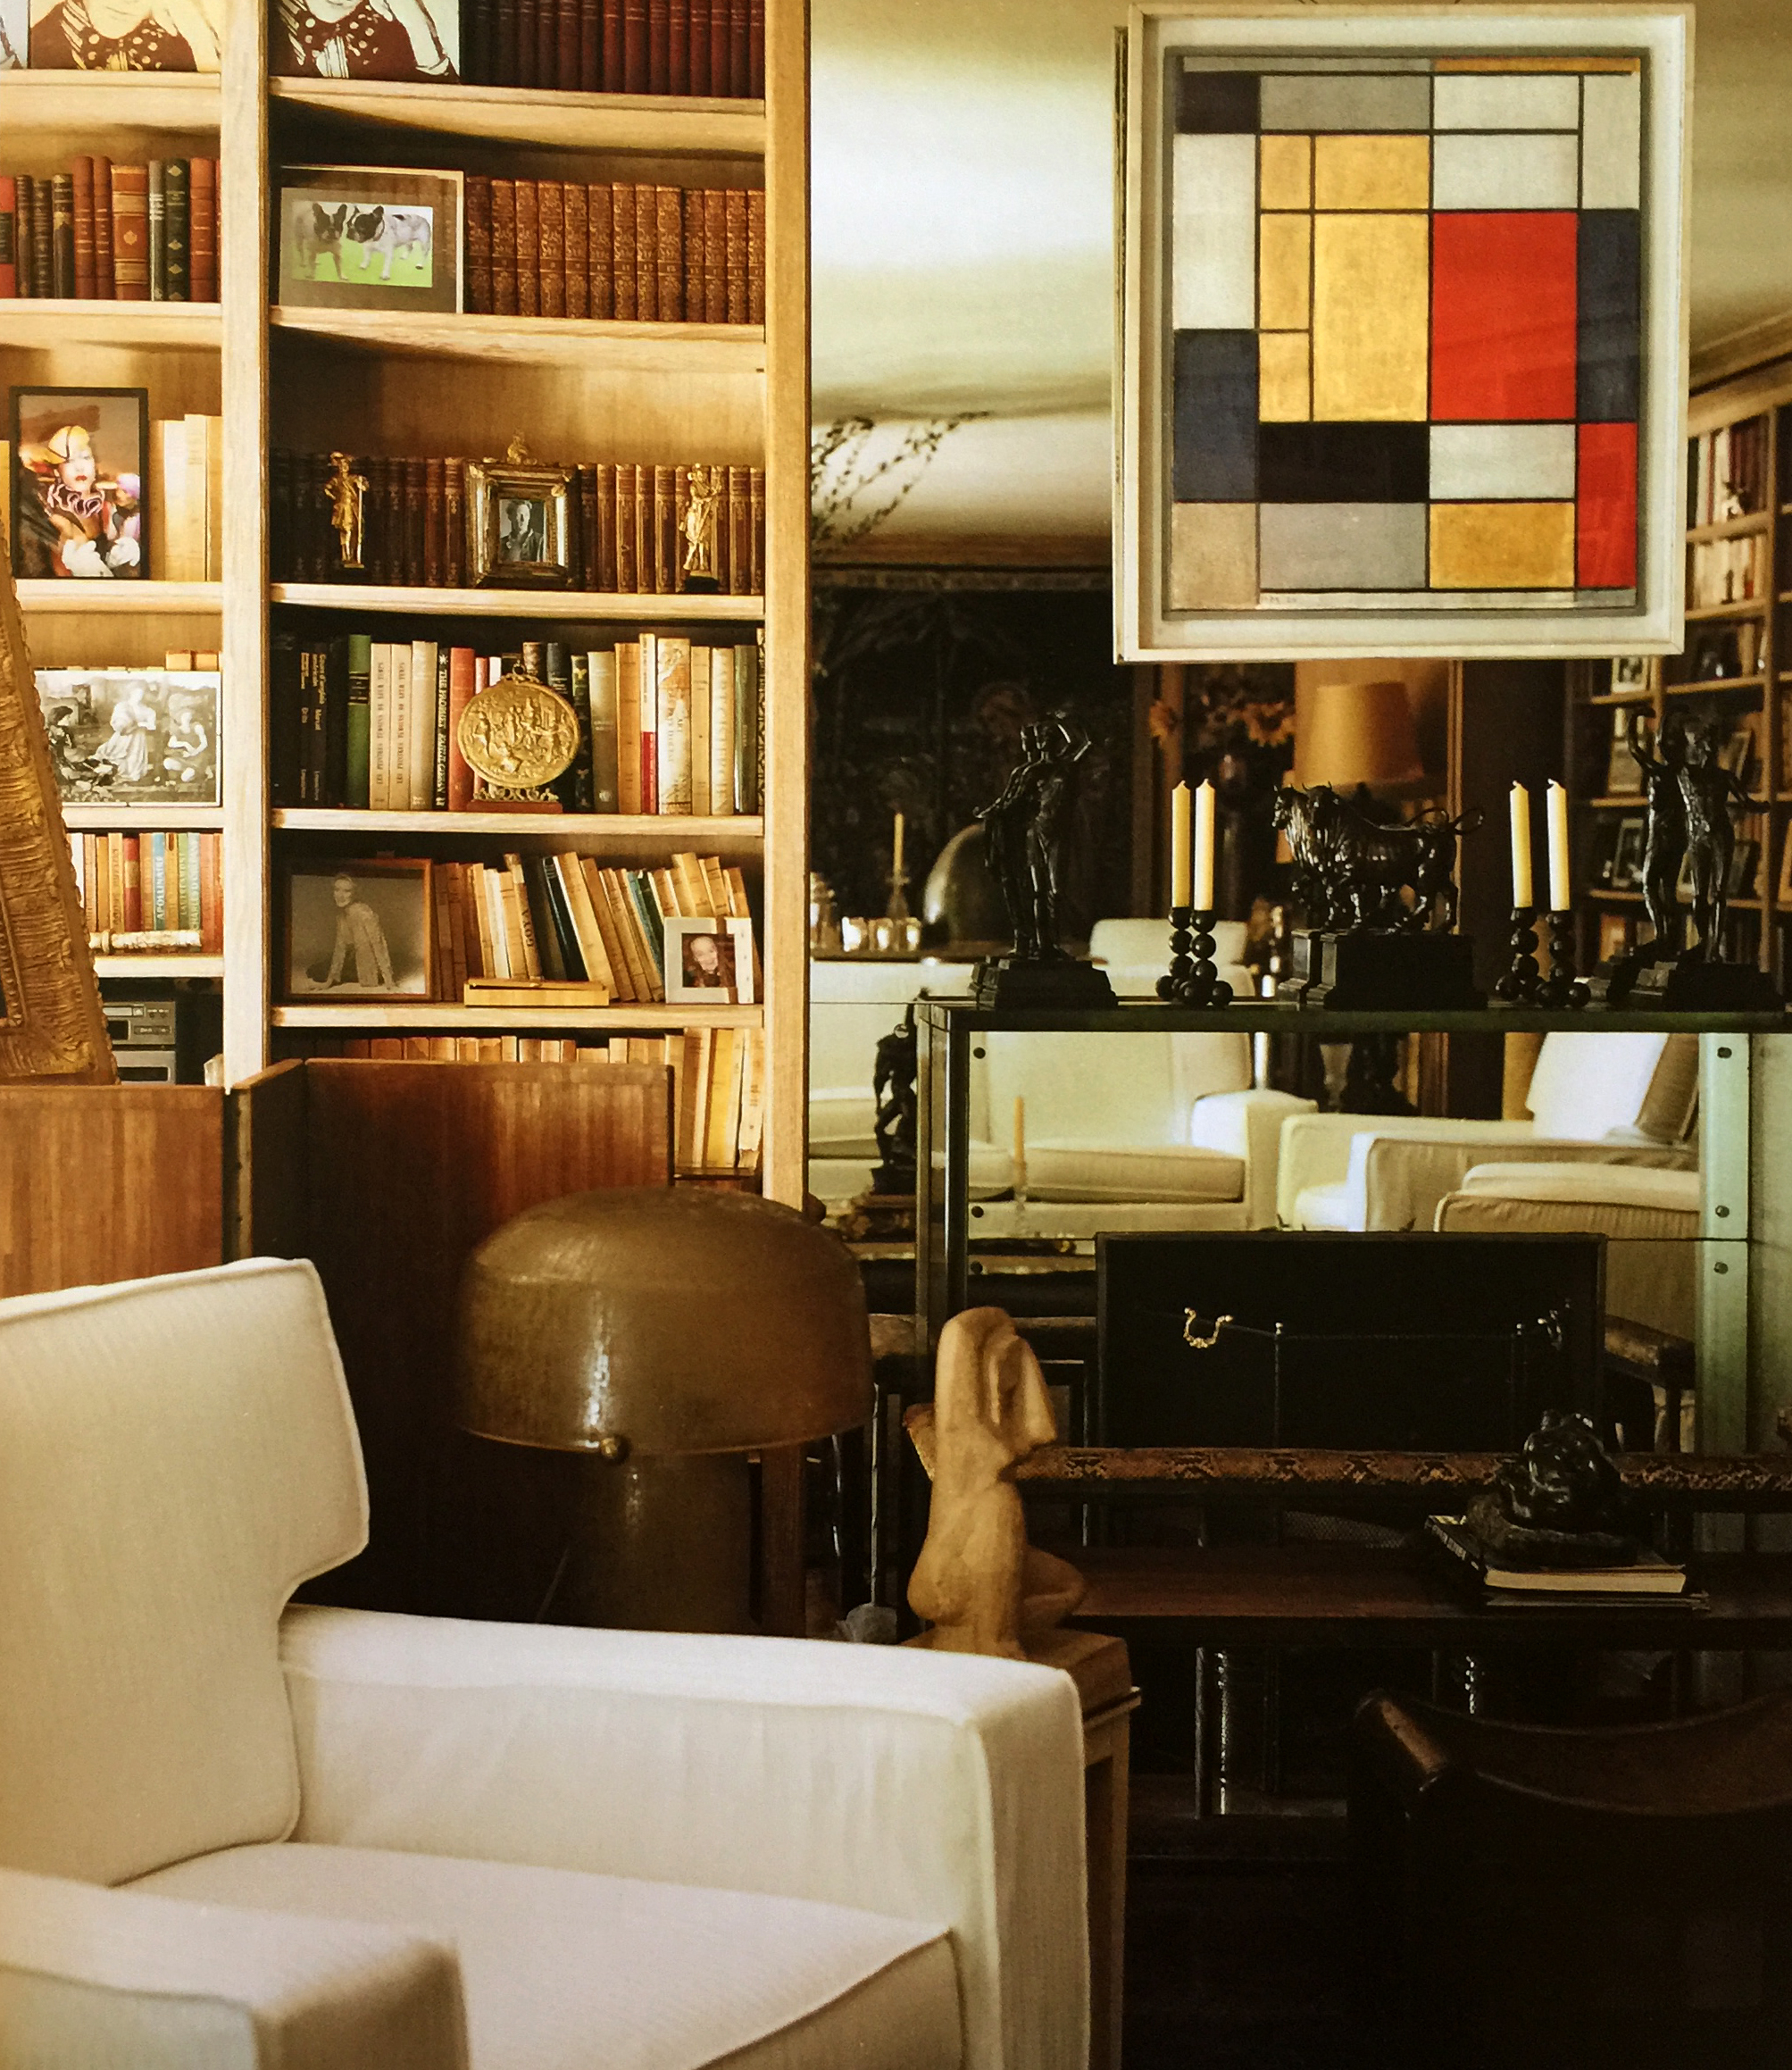 A Mondrian hangs in their famous Right Bank Apartment